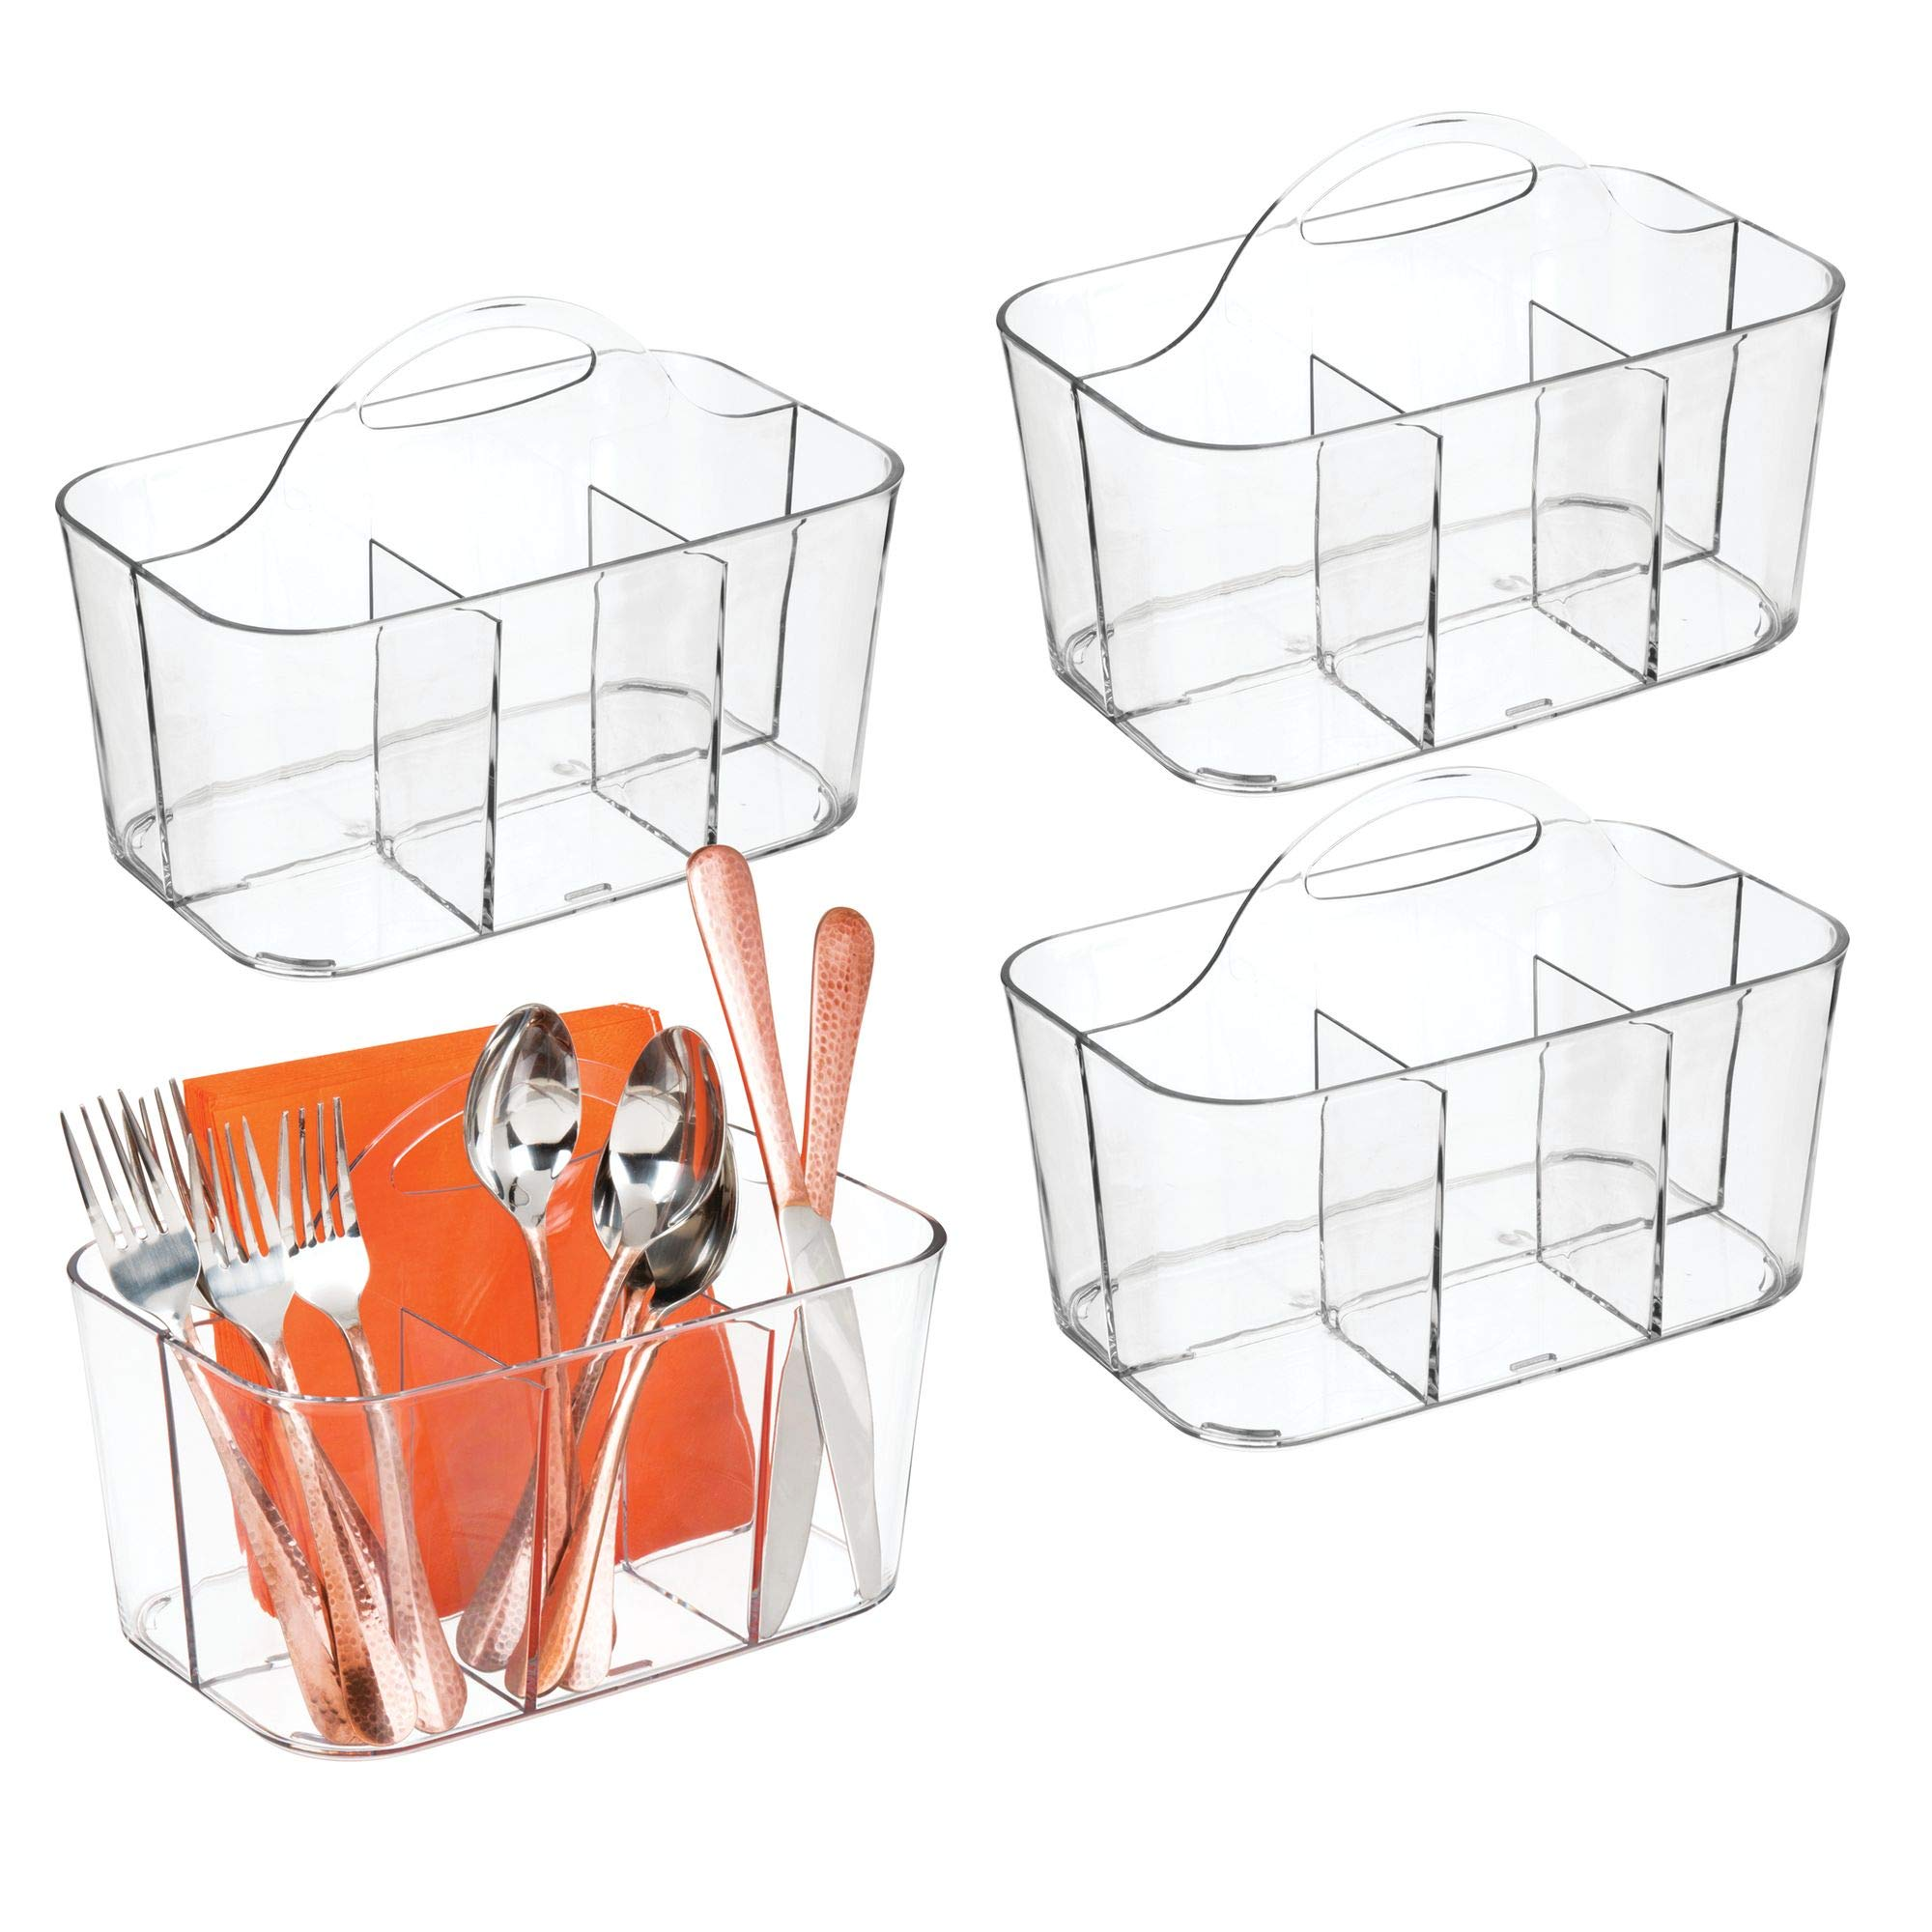 mDesign Plastic Cutlery Storage Organizer Caddy Bin - Tote with Handle - Kitchen Cabinet or Pantry - Basket Organizer for Forks, Knives, Spoons, Napkins - Indoor or Outdoor Use - 4 Pack, Clear by mDesign